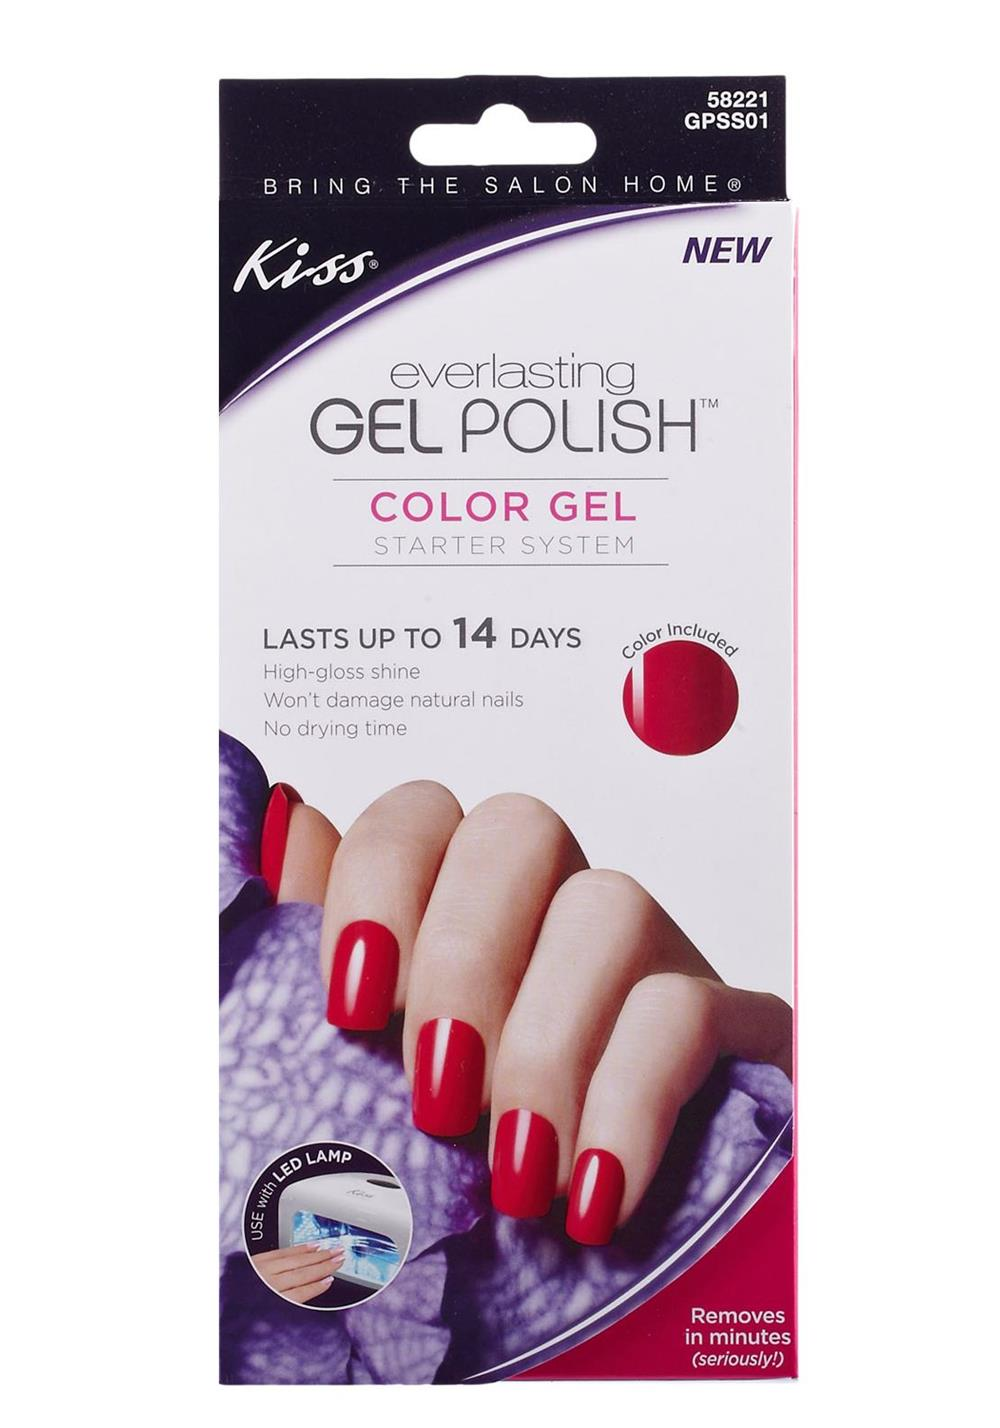 Kiss Everlasting Gel Polish Starter Kit